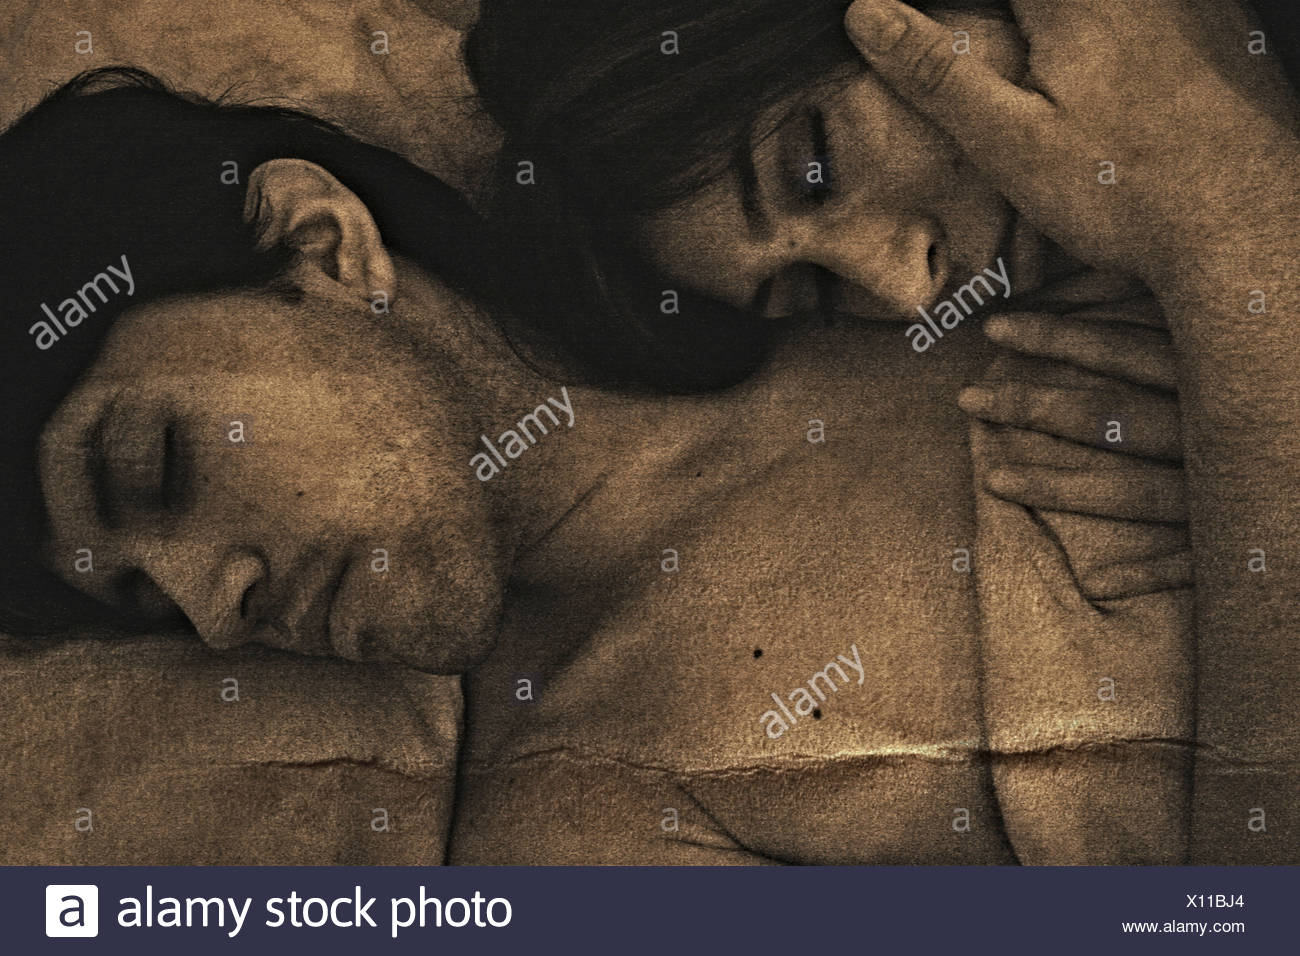 A young man and a woman lying together - Stock Image